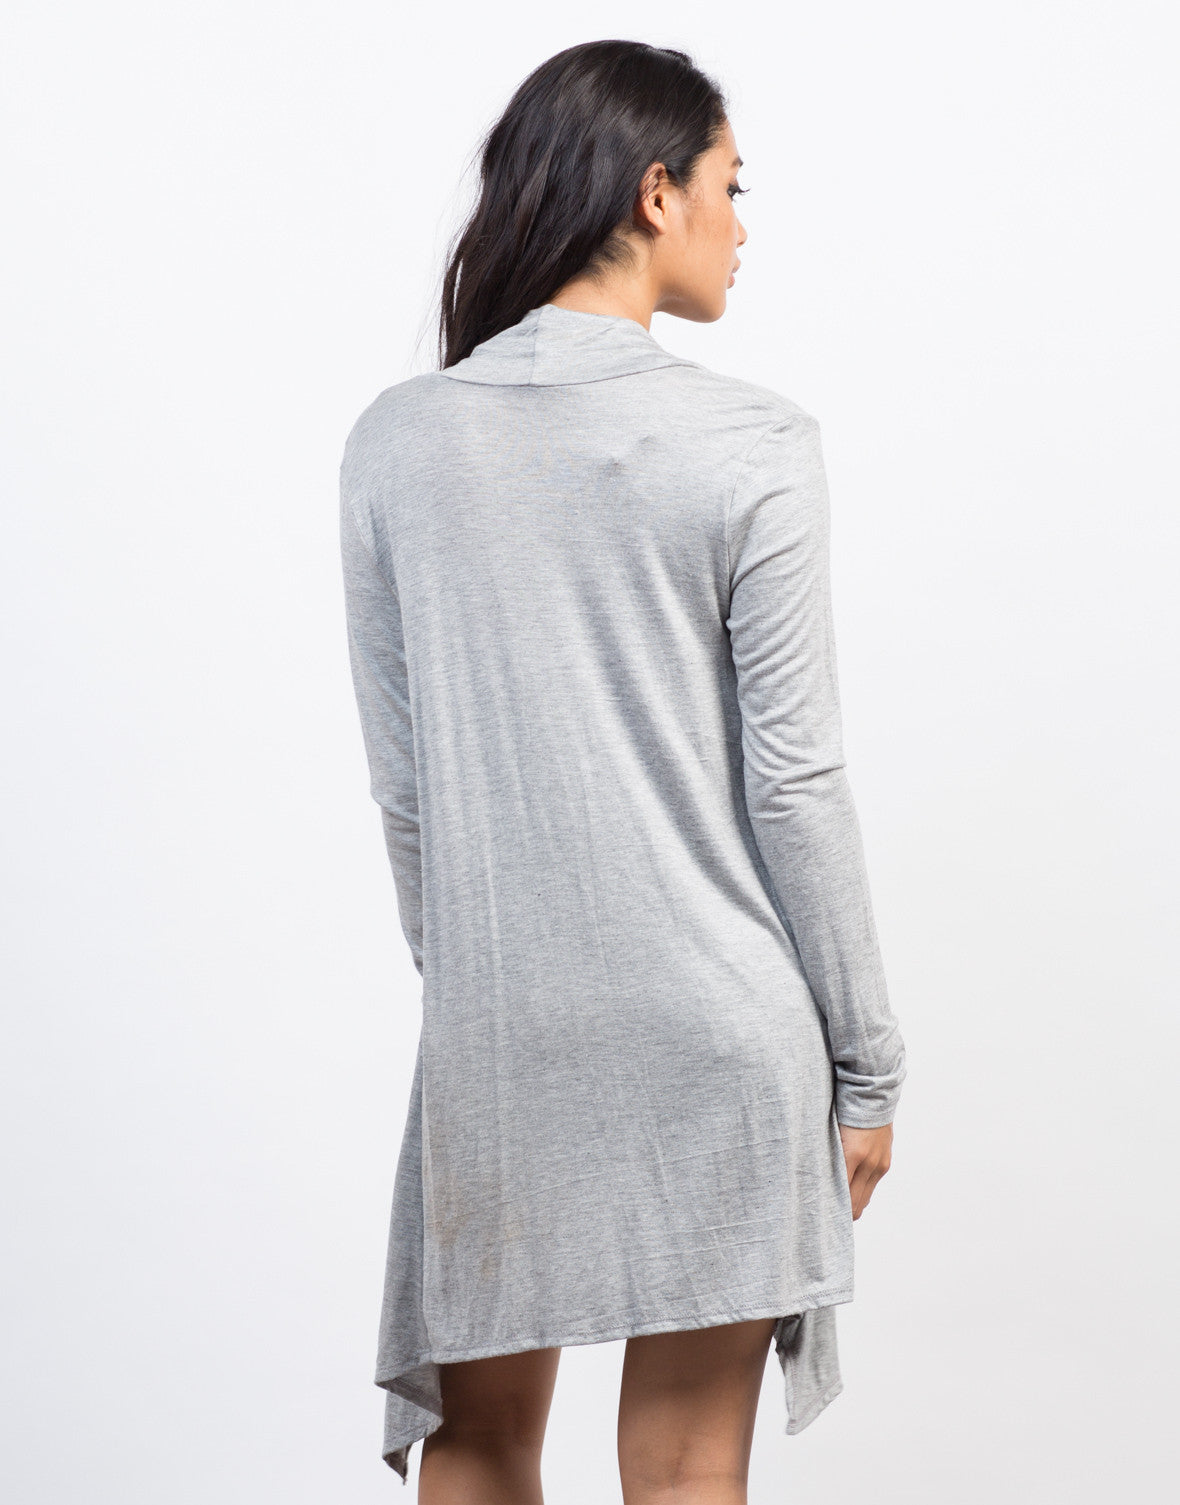 Back View of Super Soft Light Cardigan